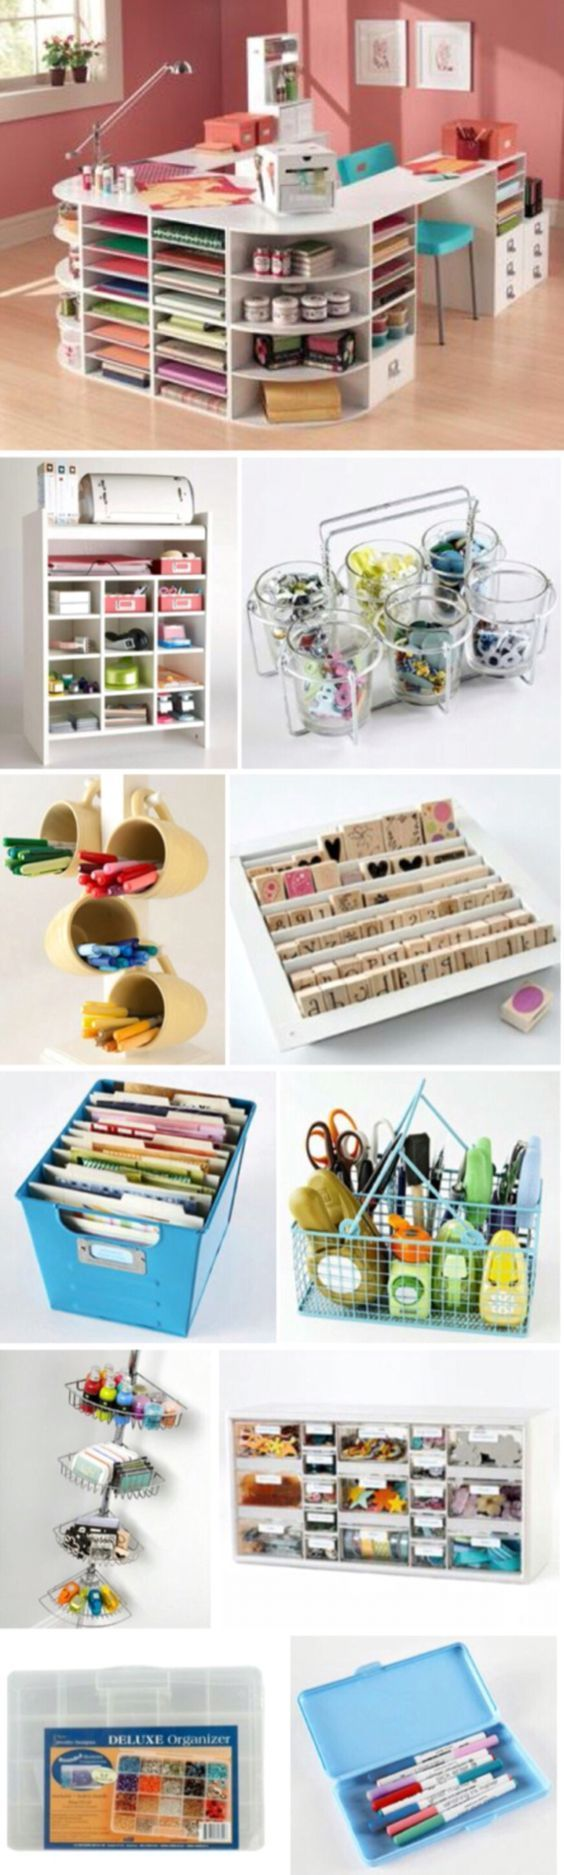 Beau 10 Craft Storage Ideas On A Budget For Your Diy Craft Space Or Office.